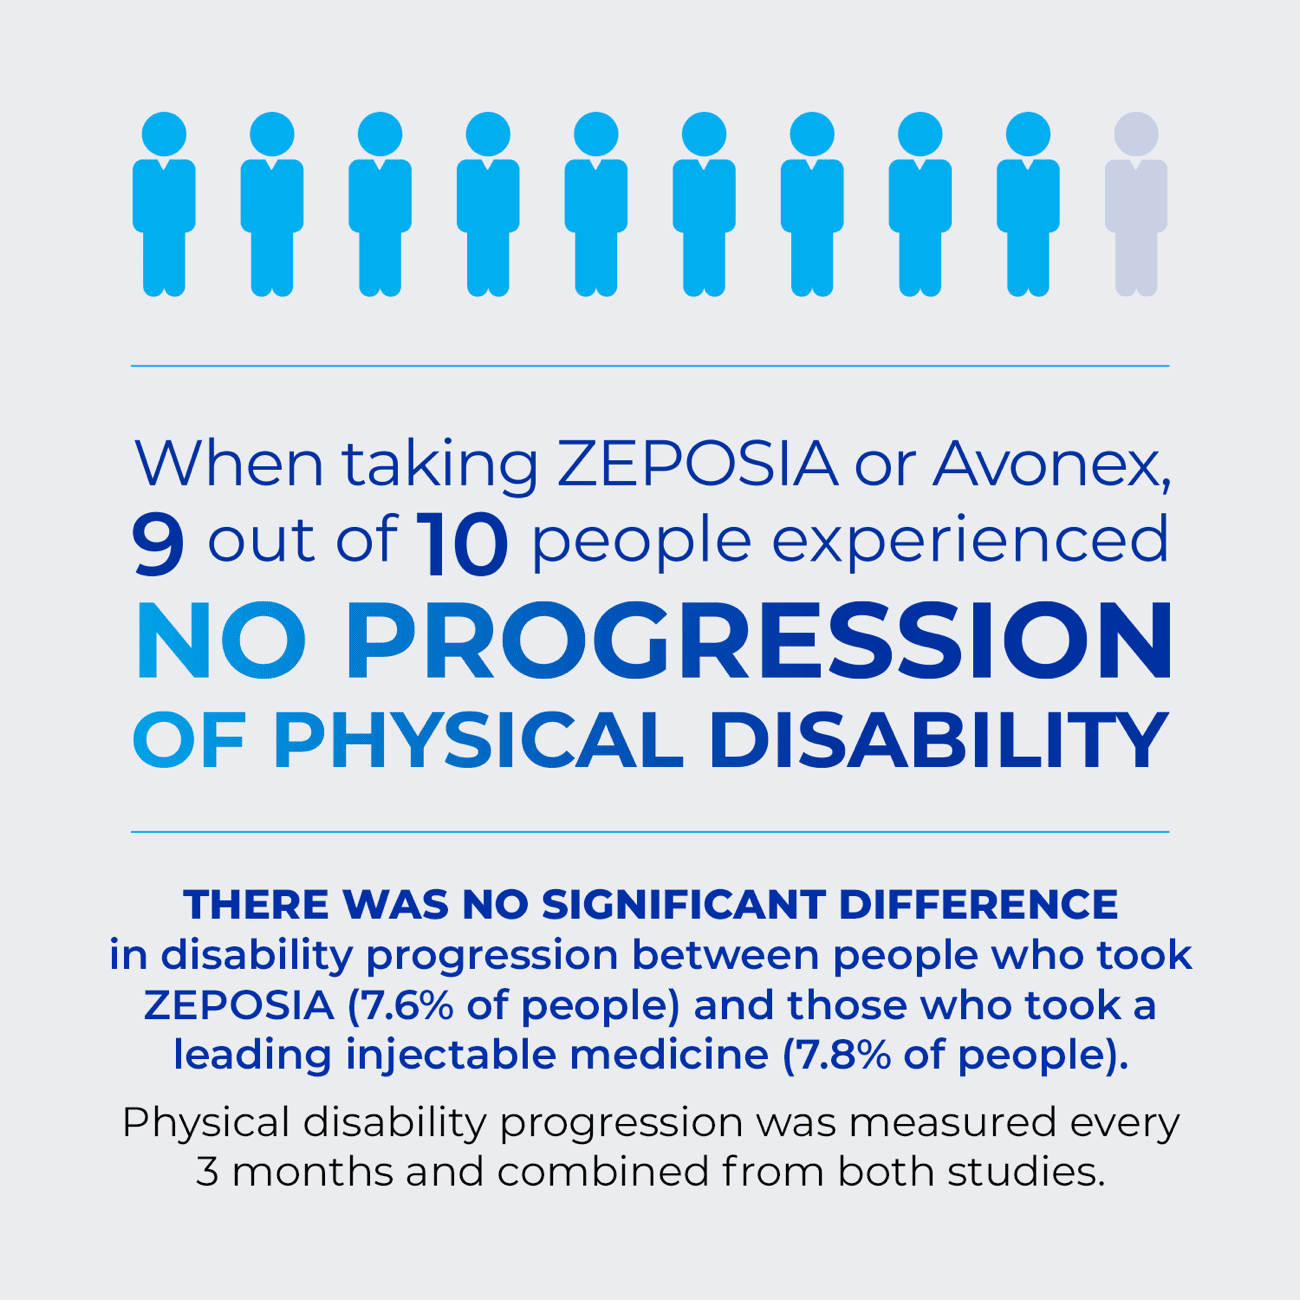 When taking ZEPOSIA or Avonex* 9 out of 10 people experienced no progression of physical disability.